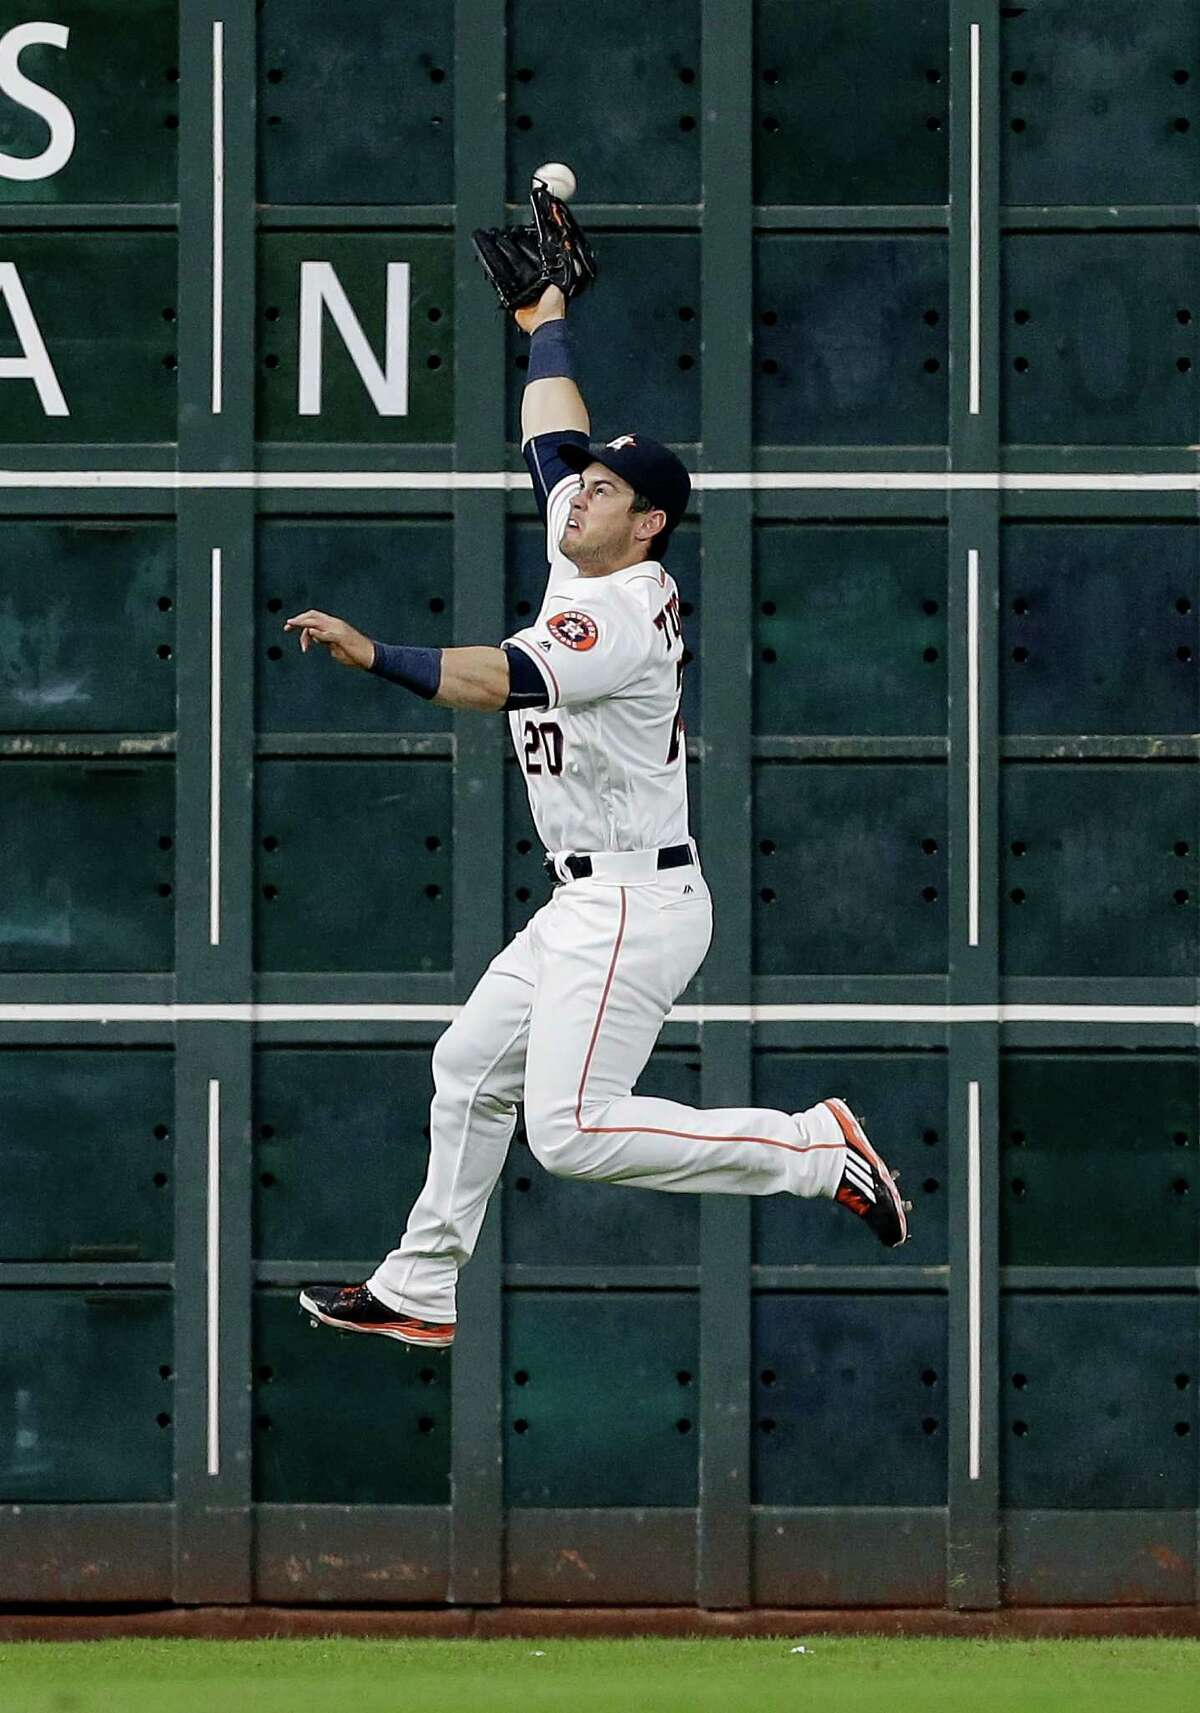 Aug 1: Astros 2, Blue Jays 1 HOUSTON, TX - AUGUST 01: Preston Tucker #20 of the Houston Astros has a line drive by Devon Travis #29 of the Toronto Blue Jays go off the top of his glove in the third inning for a double at Minute Maid Park on August 1, 2016 in Houston, Texas.